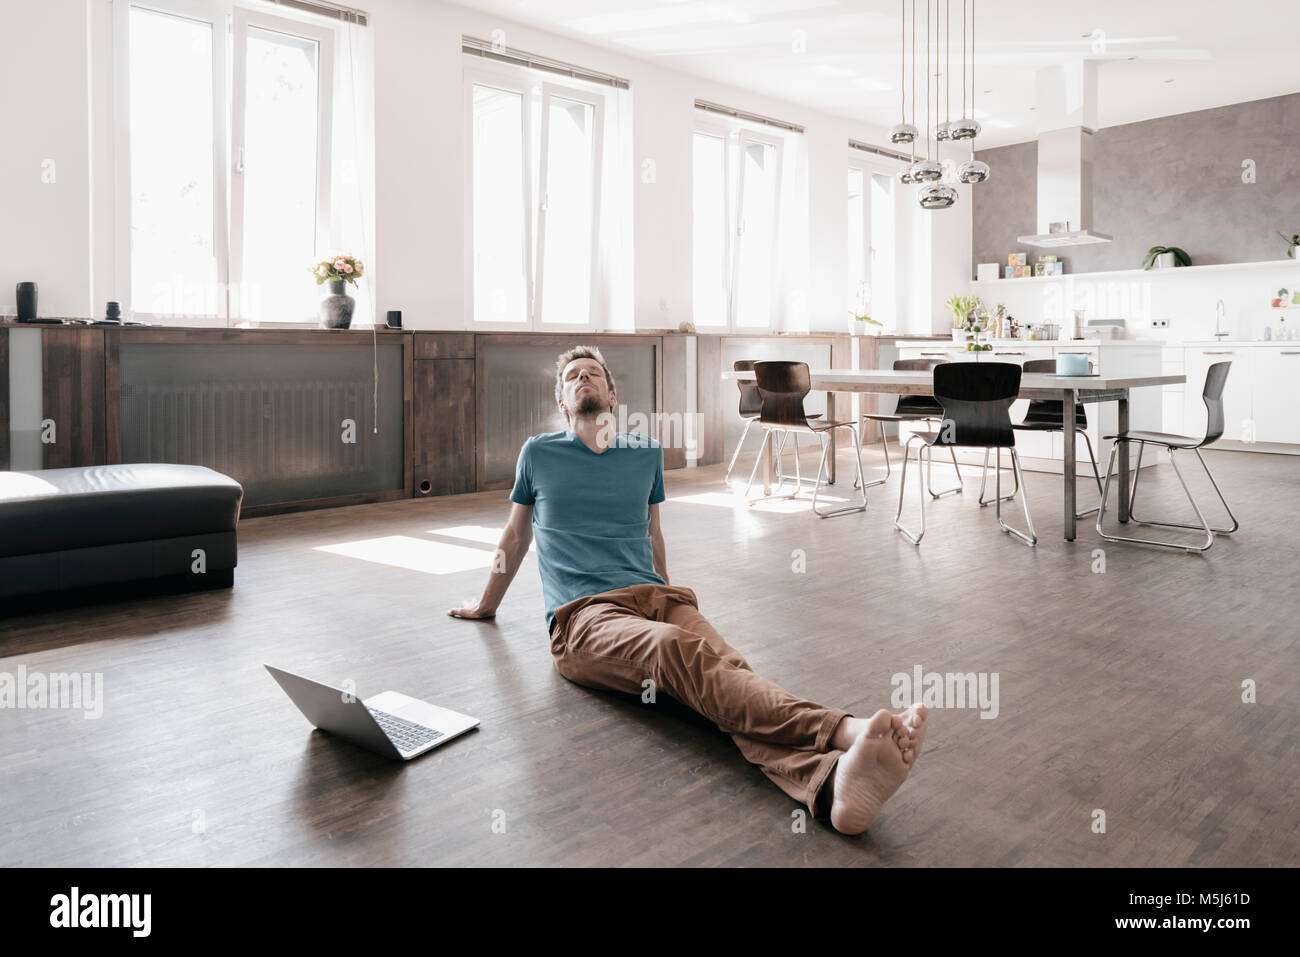 Man with eyes closed sitting on the floor in a loft relaxing - Stock Image